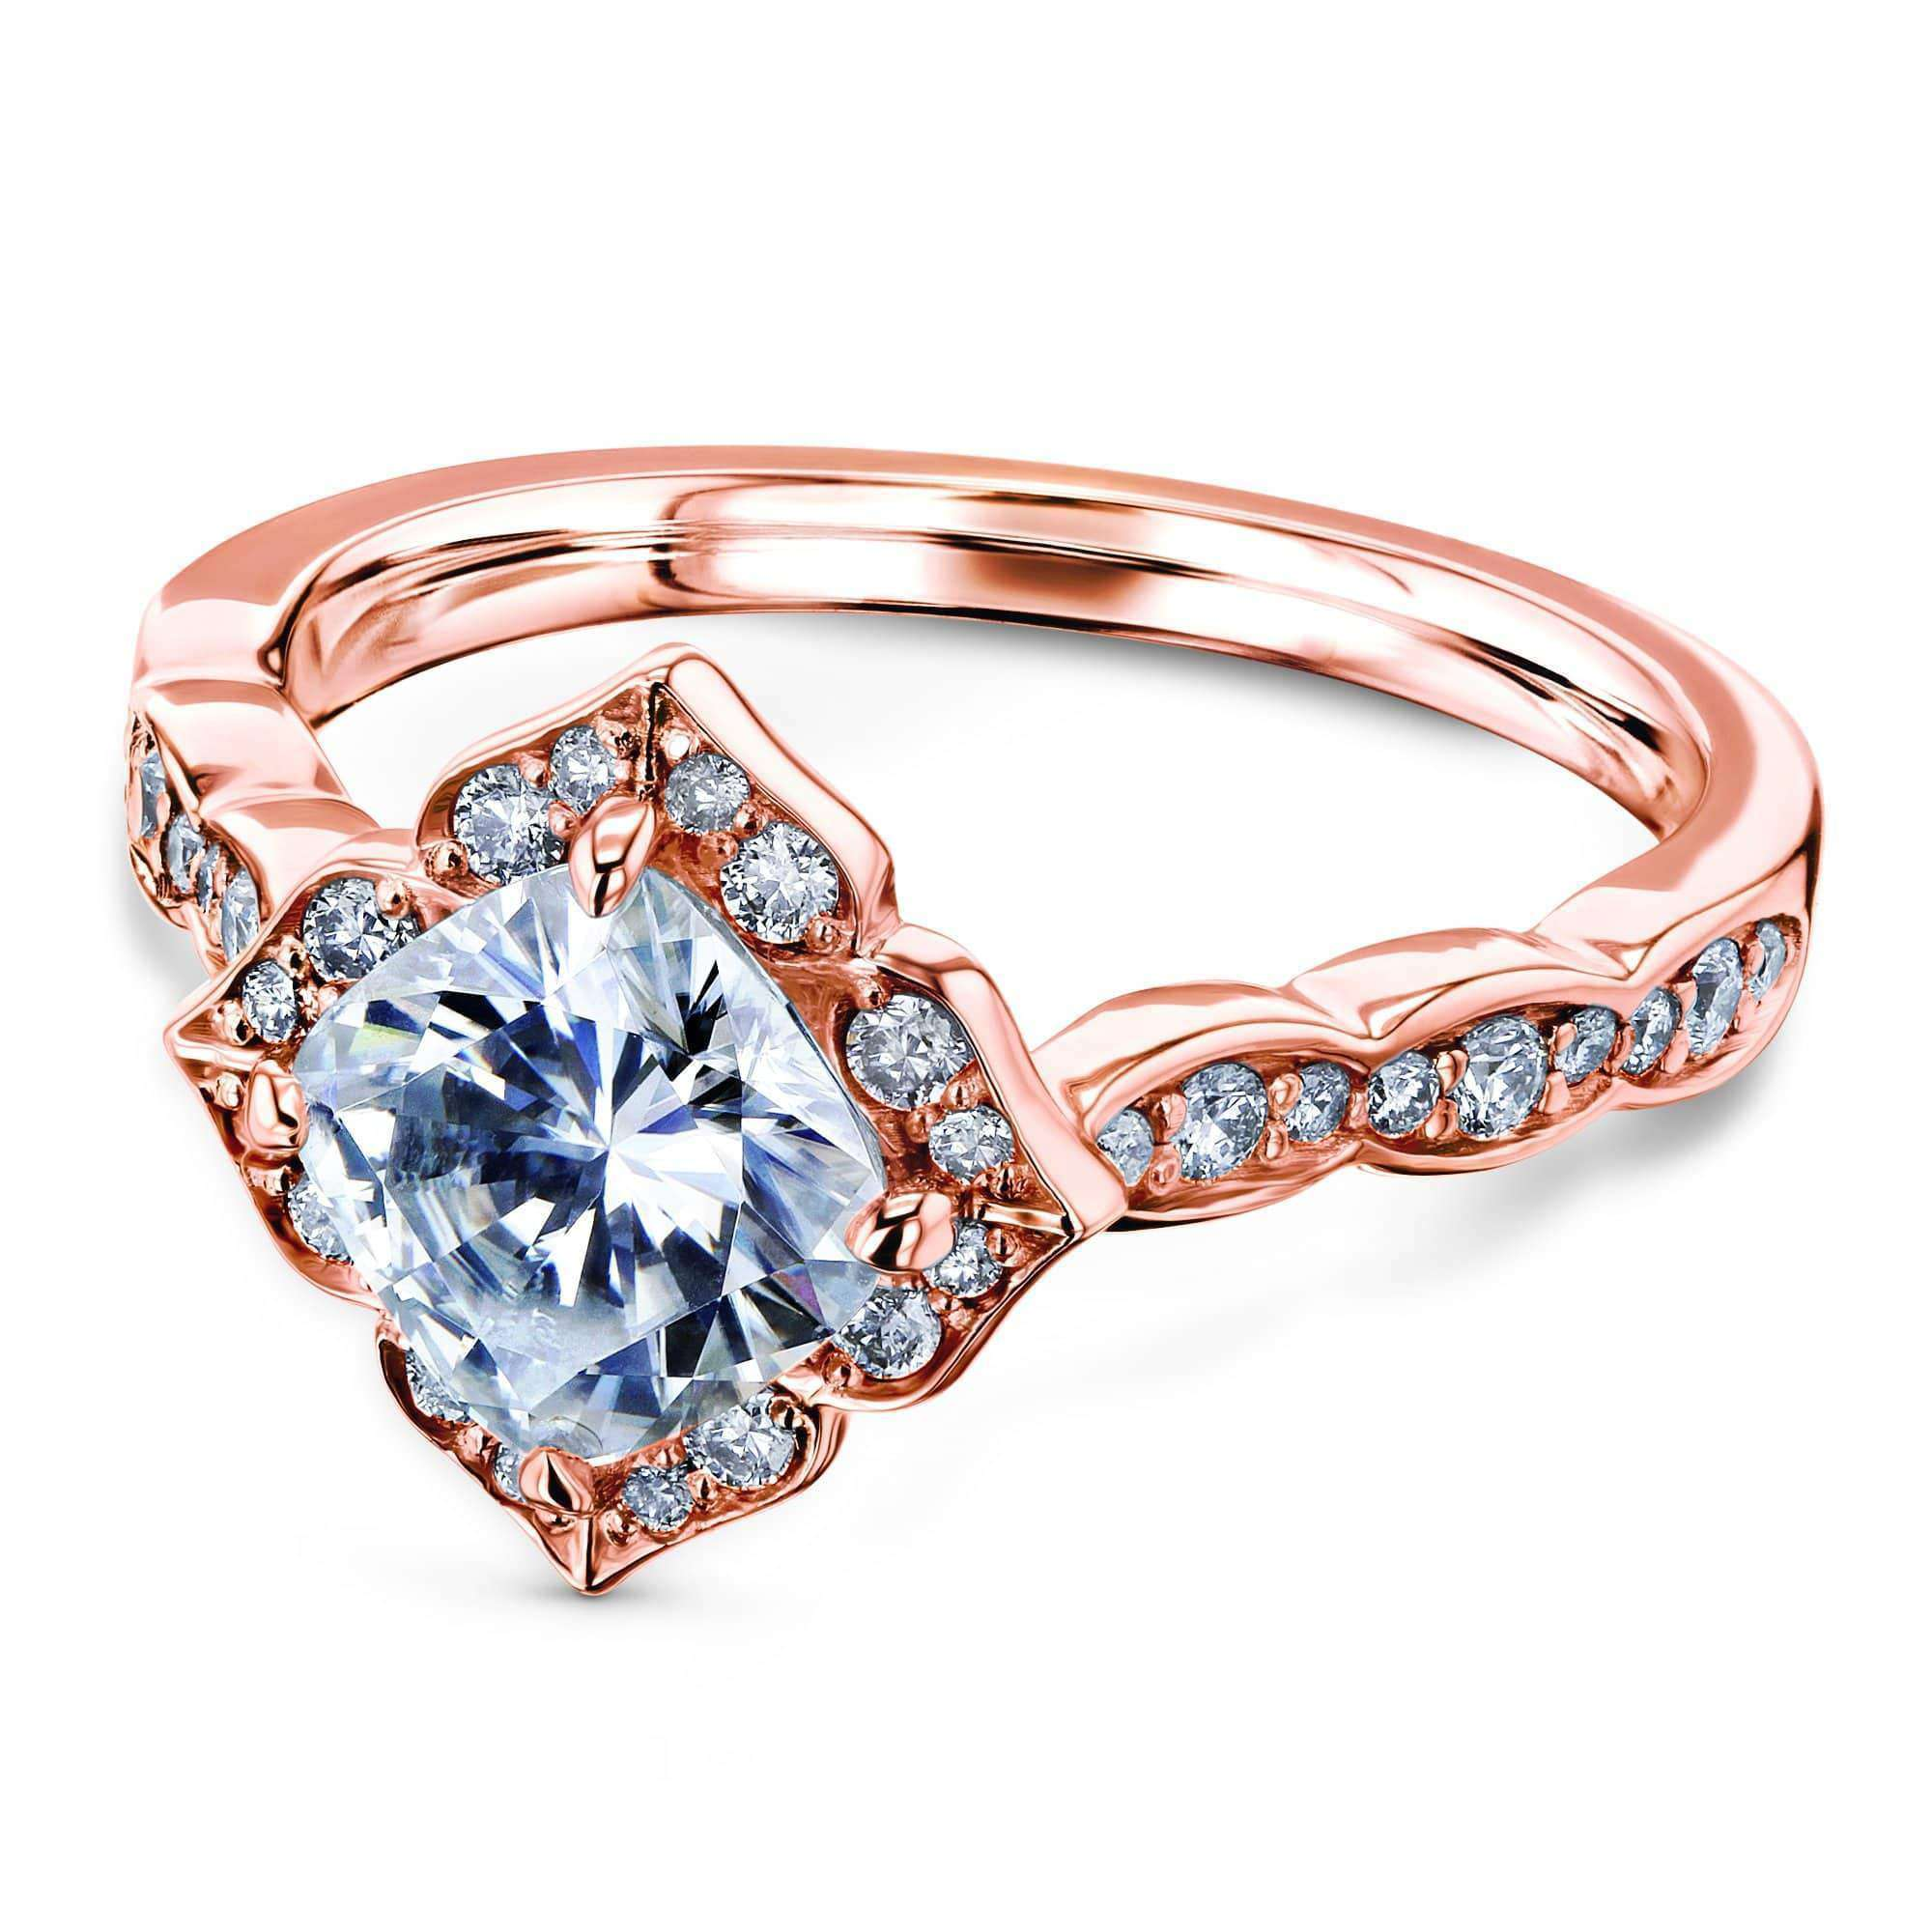 Compare Cushion Moissanite Floral Halo Ring (1 1/3 CTW) - rose-gold 9.5 Kobelli H-I